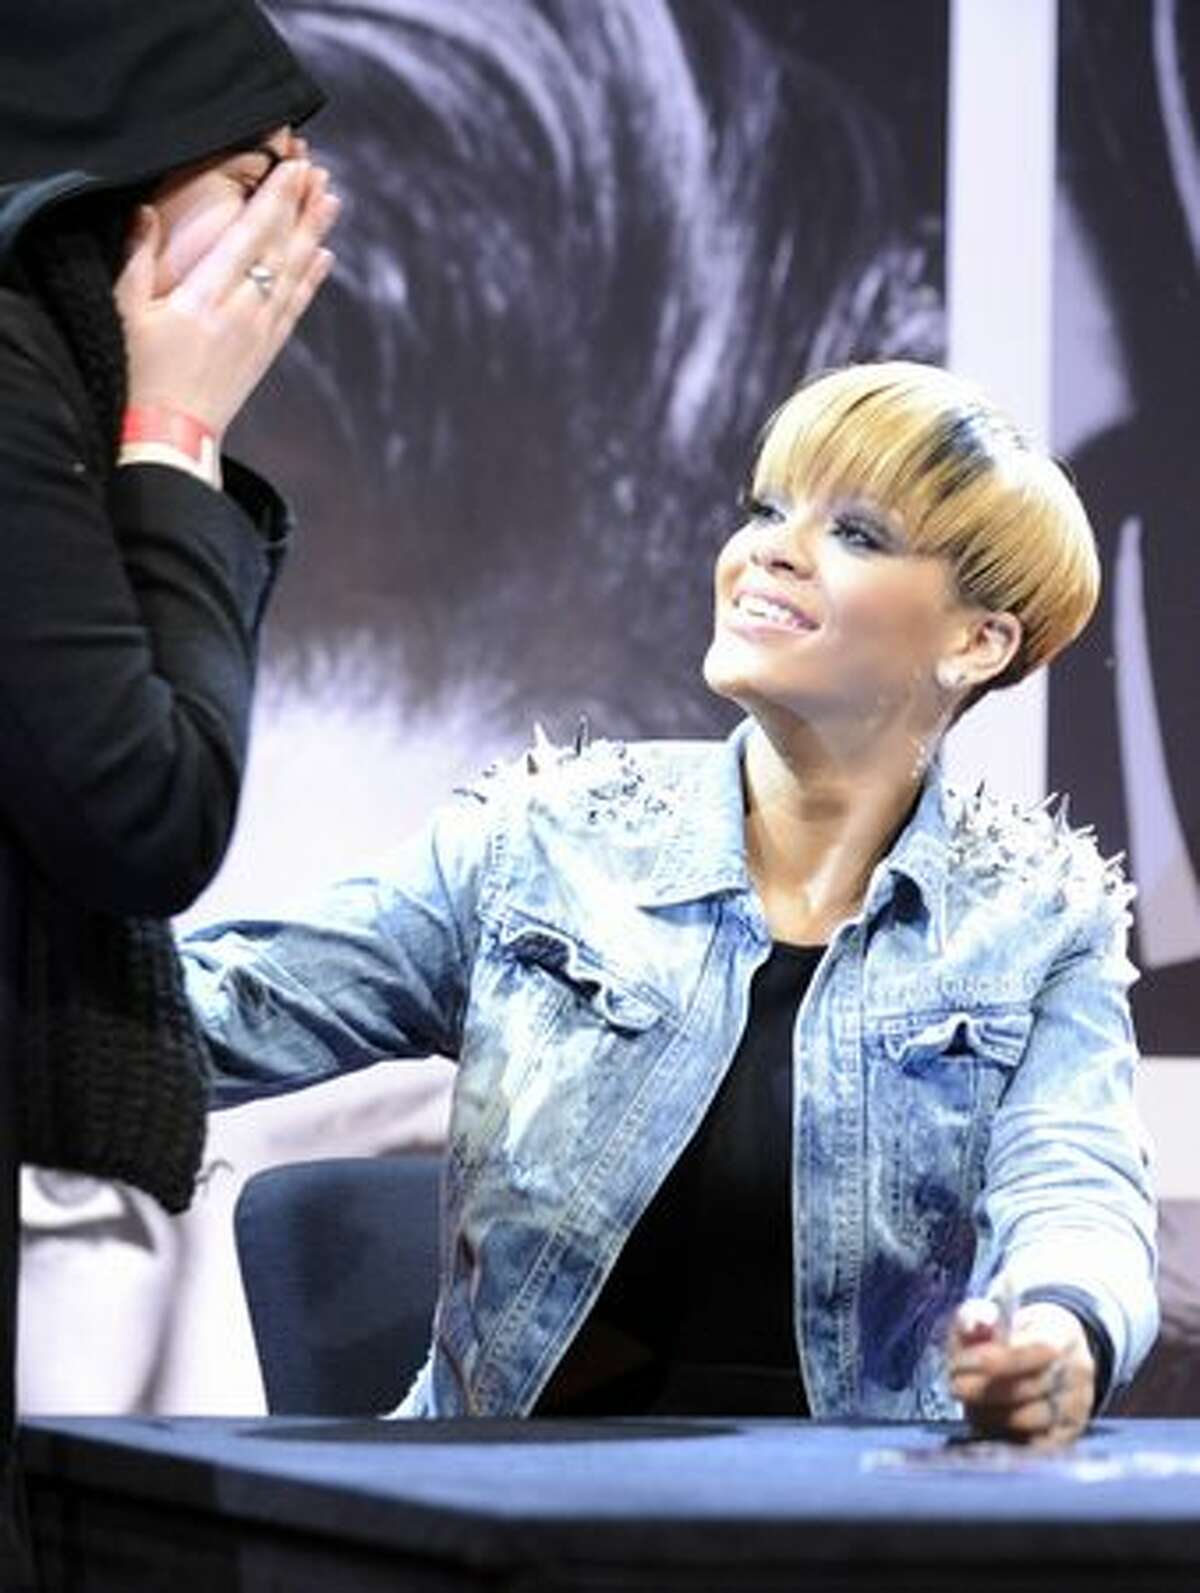 US singer Rihanna comforts a fan who cries as she receives an autograph at a shopping centre in Berlin.